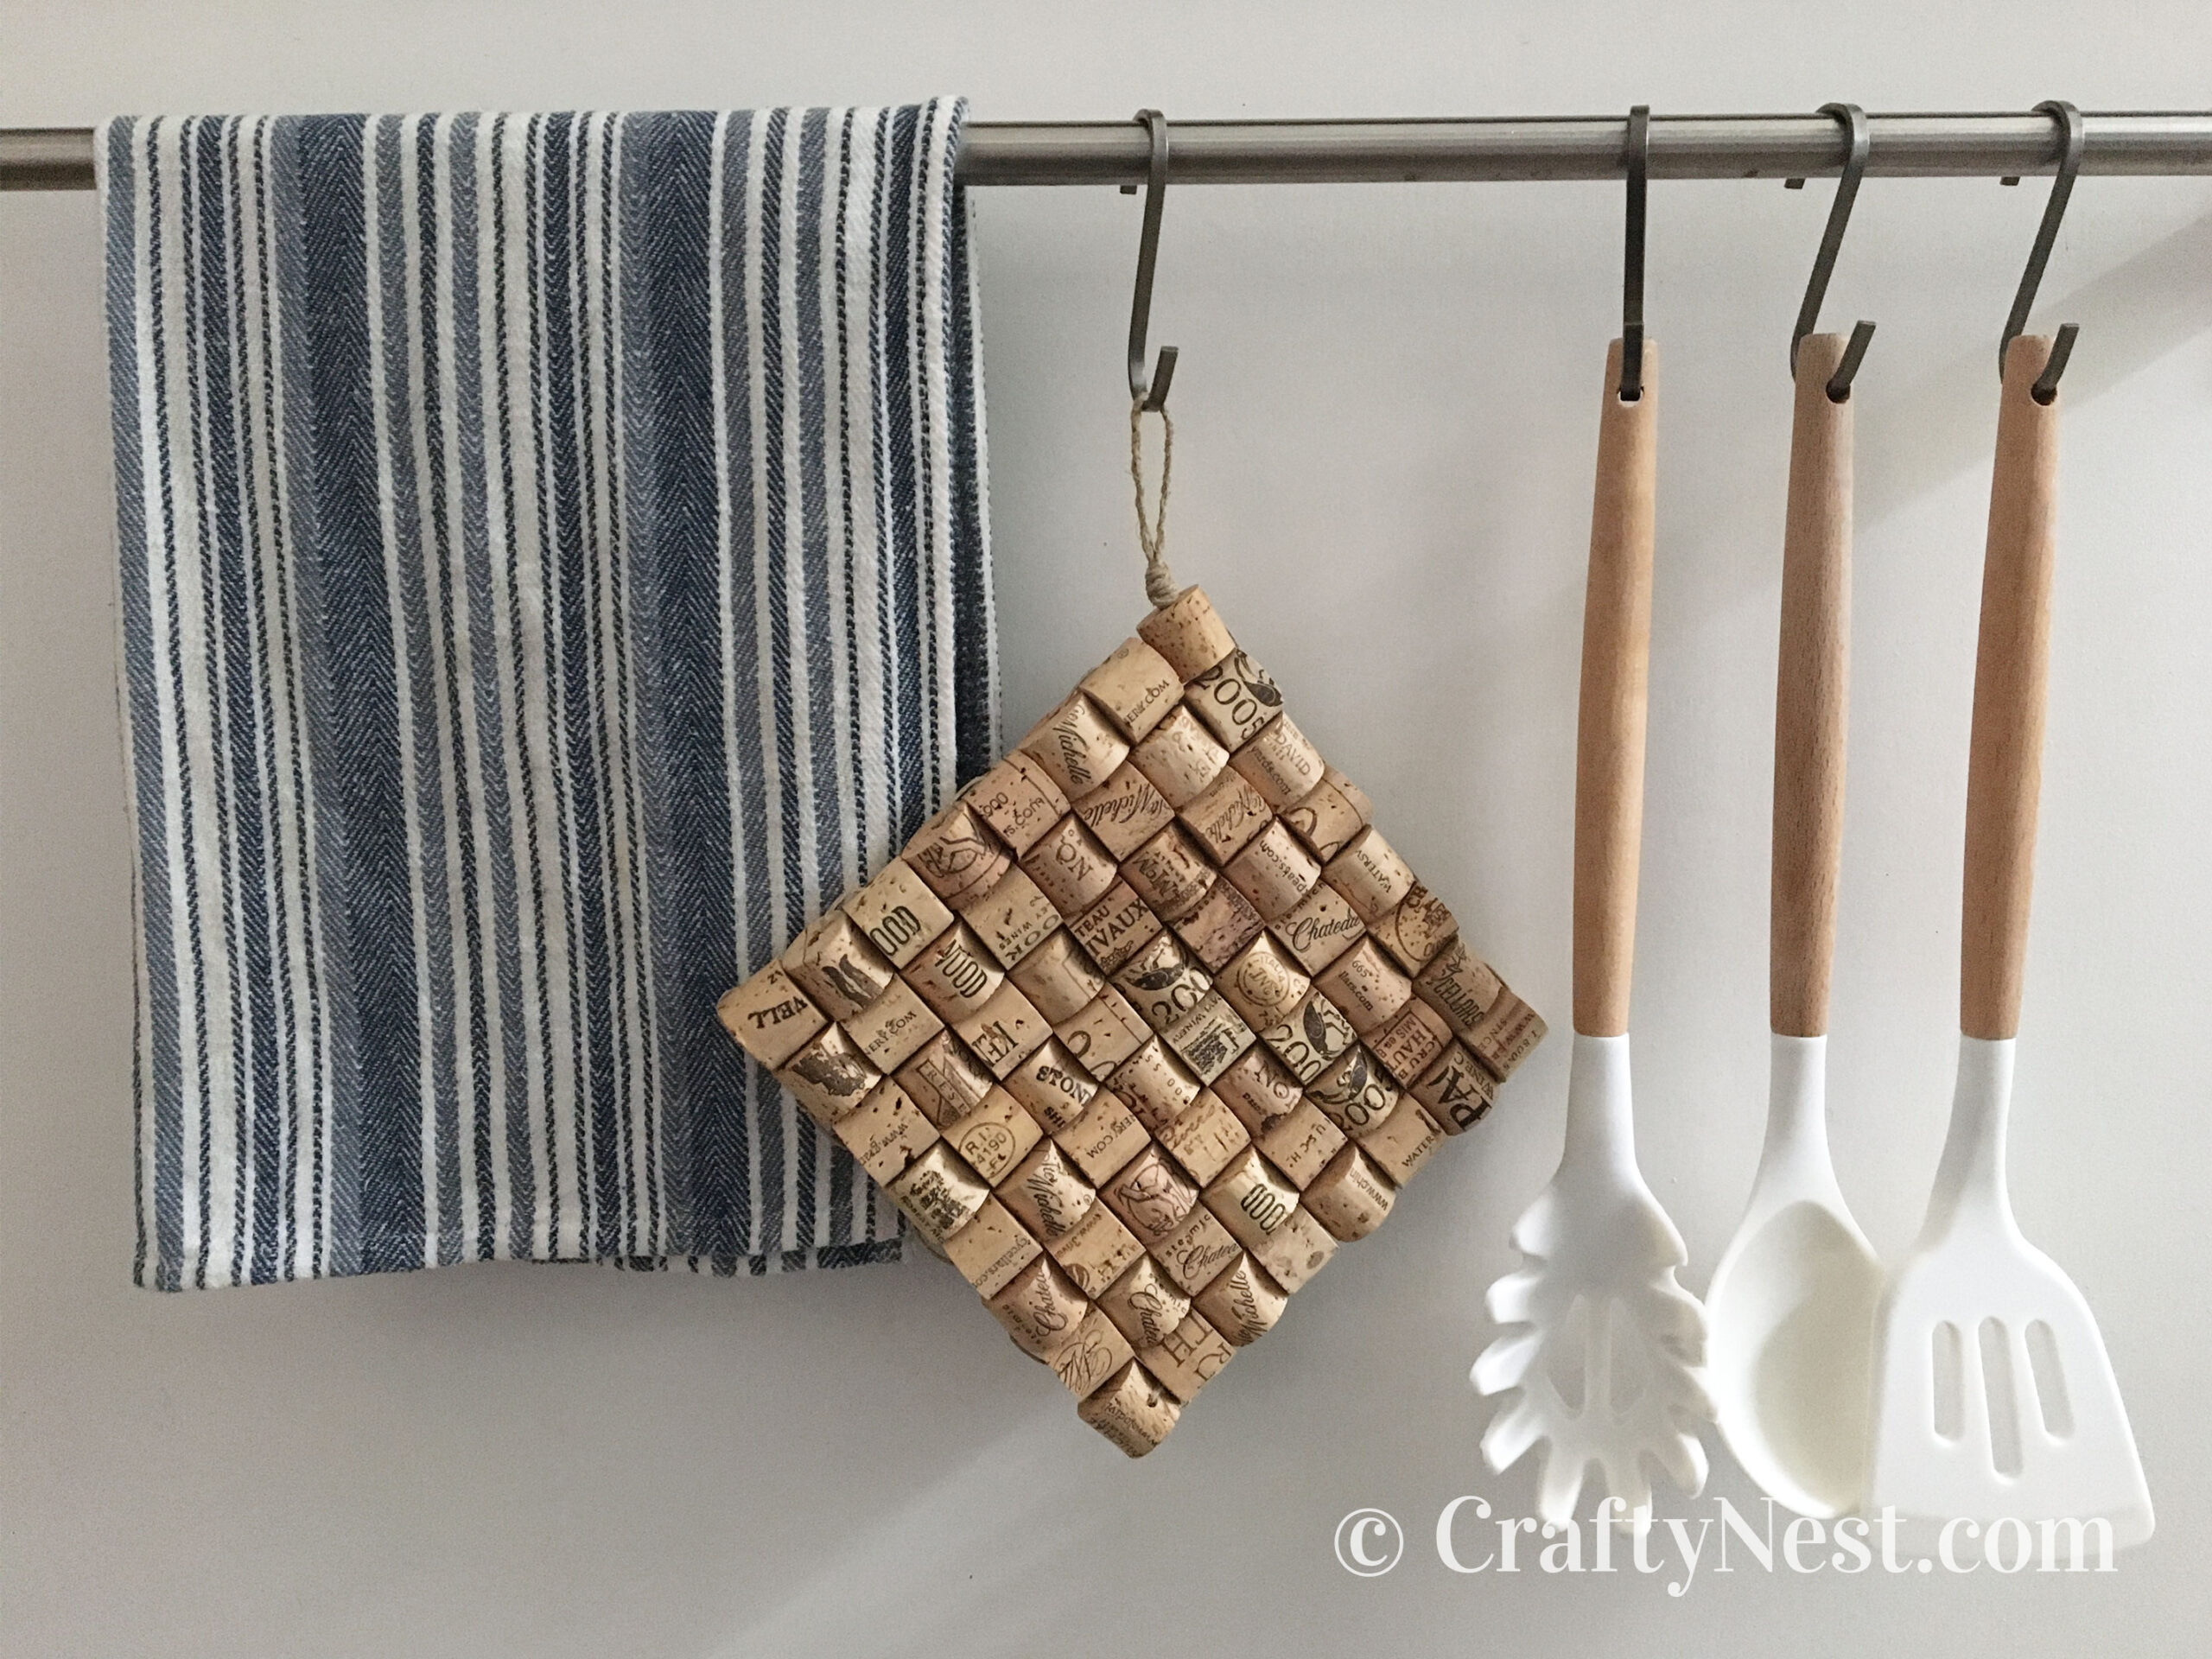 Wine-cork trivet hanging from a hook with a dish towel and cooking utensils, photo